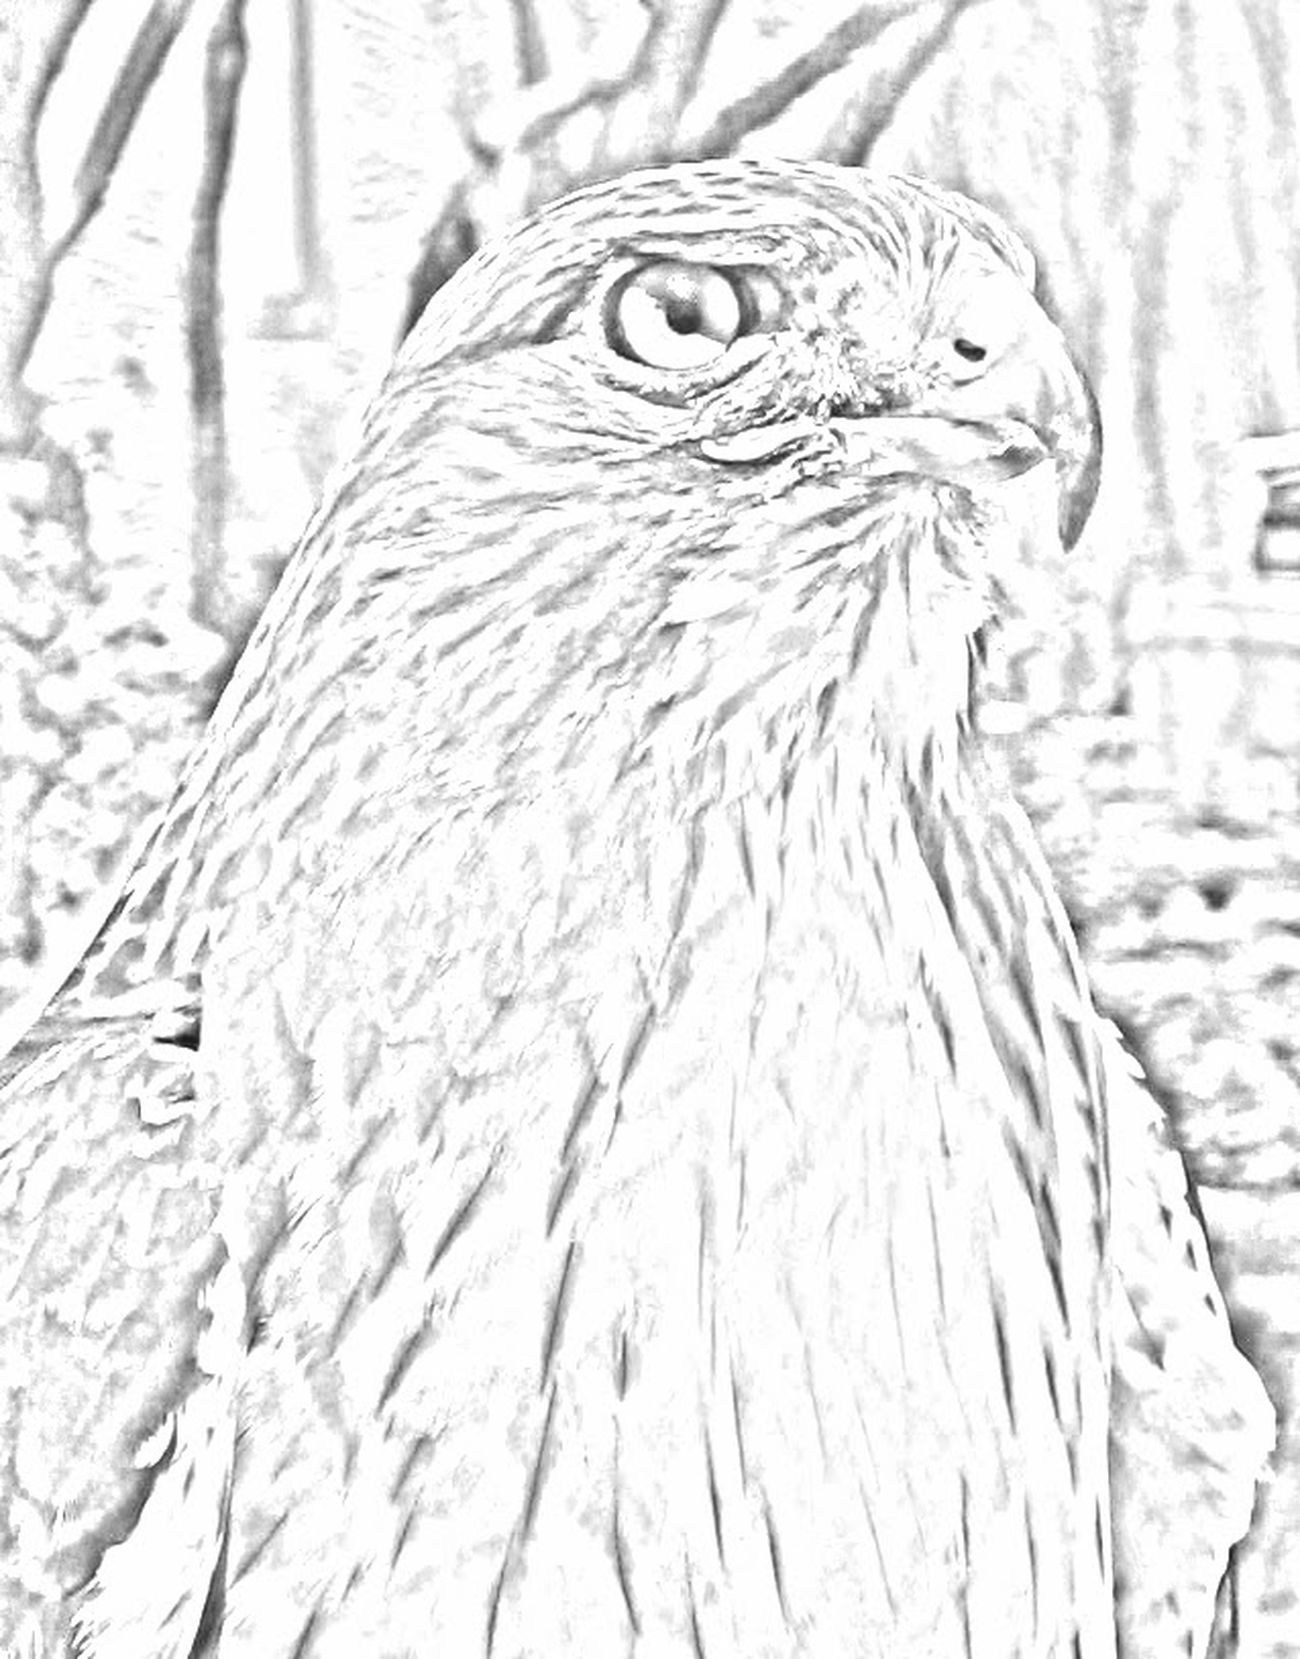 Animal Themes Animal Wildlife Animals In The Wild Beak Bird Bird Of Prey Close-up Day Nature No People One Animal Outdoors Owl